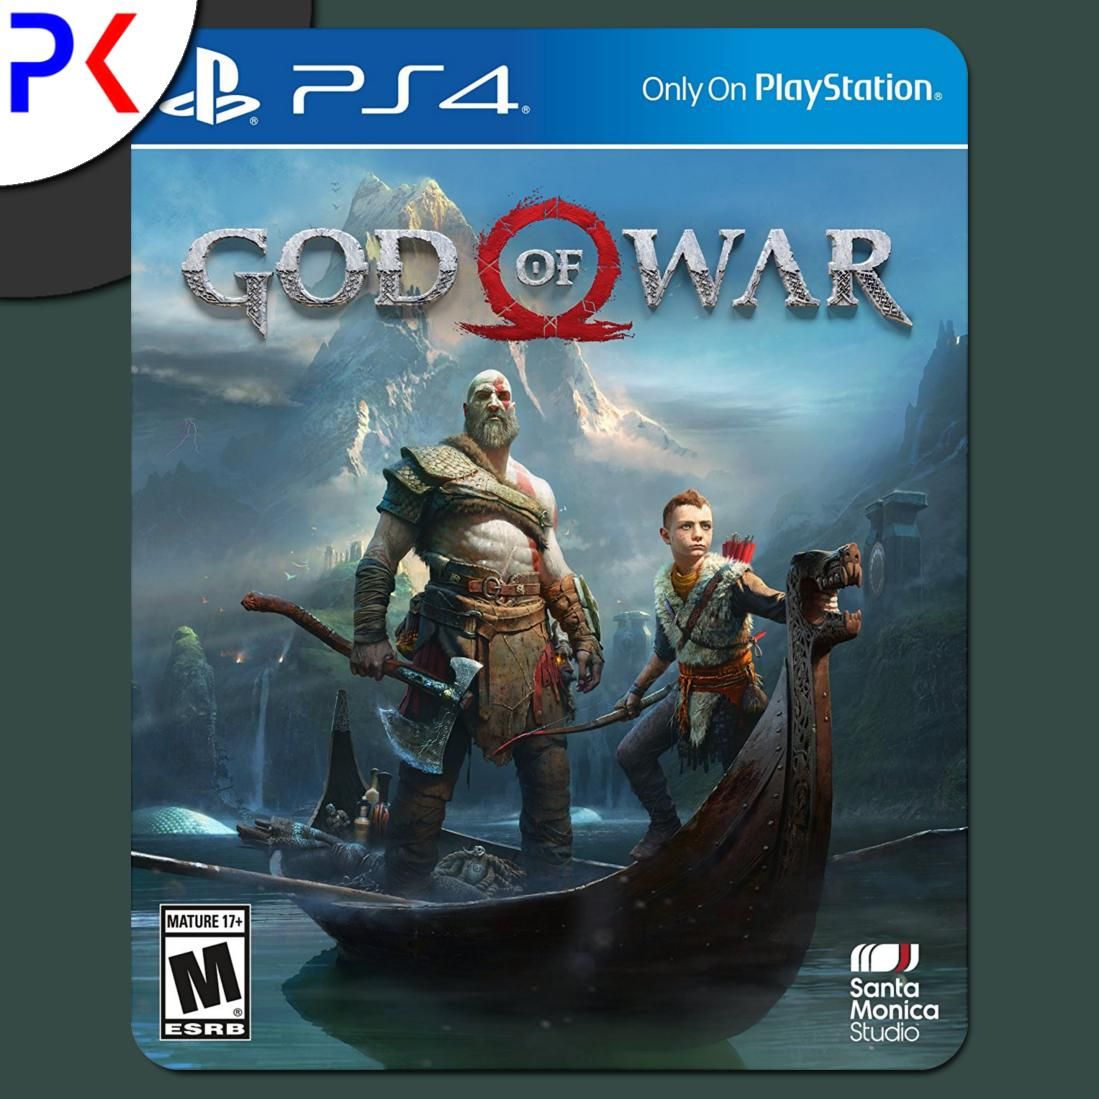 Ps4 God Of War R3 Promo Code